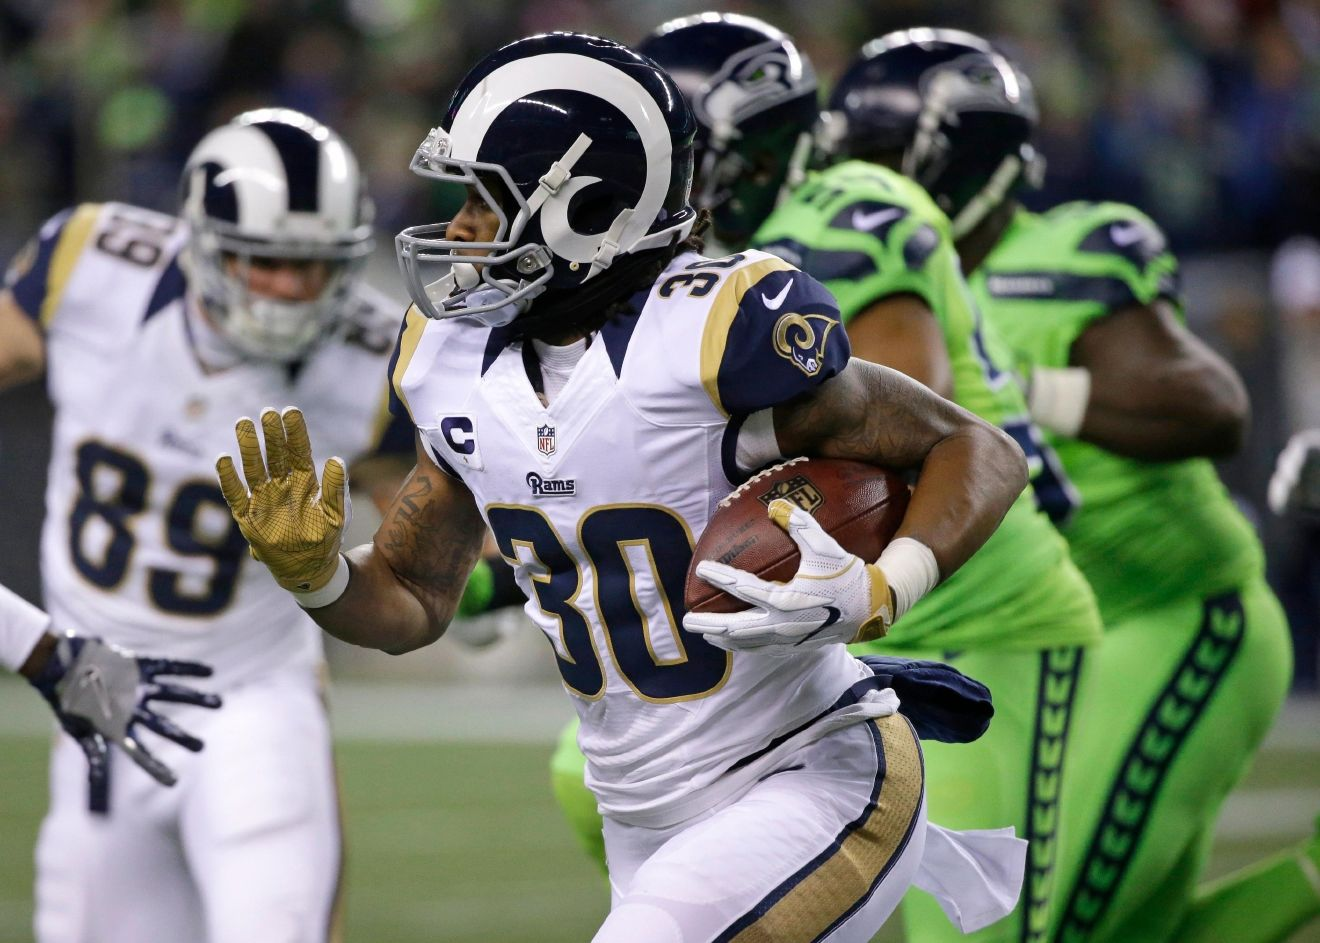 Los Angeles Rams running back Todd Gurley rushes against the Seattle Seahawks in the first half of an NFL football game, Thursday, Dec. 15, 2016, in Seattle. (AP Photo/Elaine Thompson)